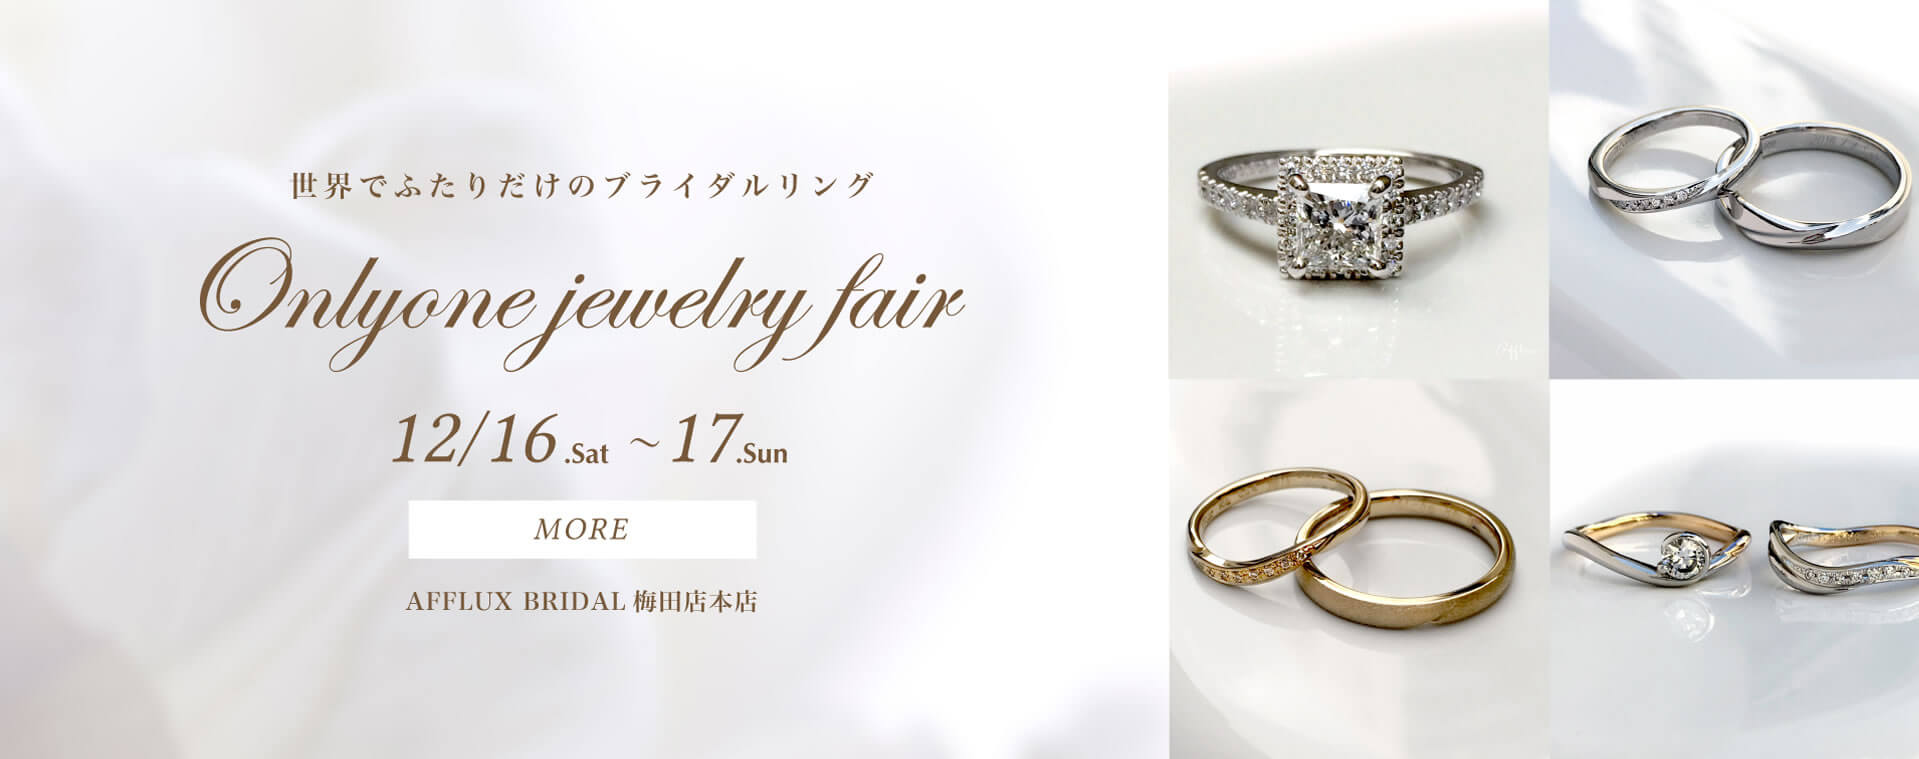 Onlyone jewelry  Fair 12.16-12.17